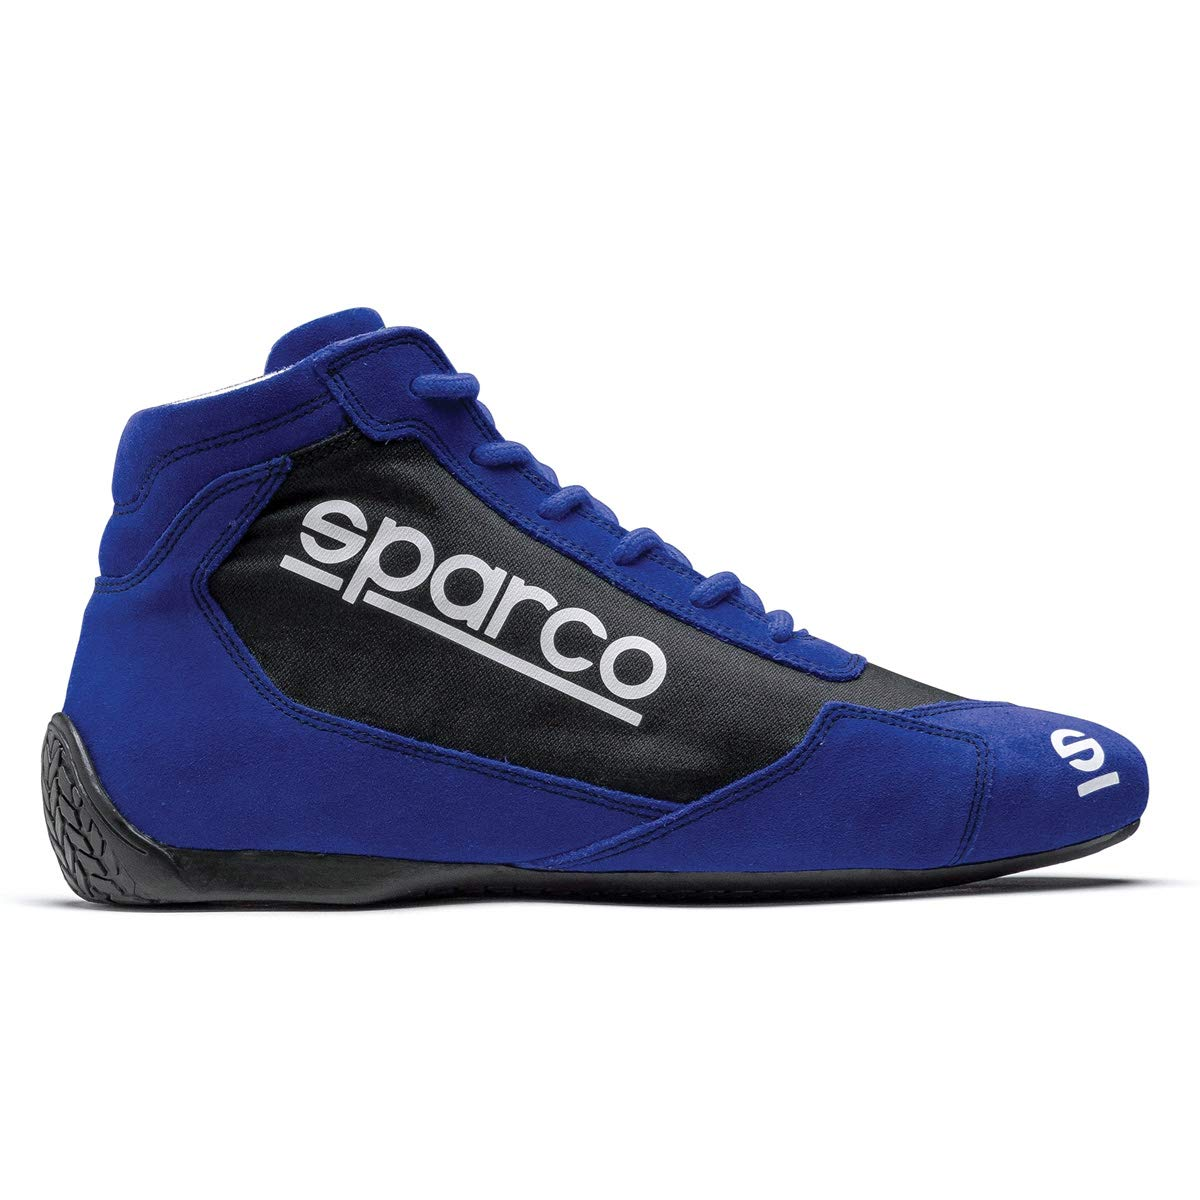 Sparco Slalom US Racing Shoes 001266 Size: 47, Black